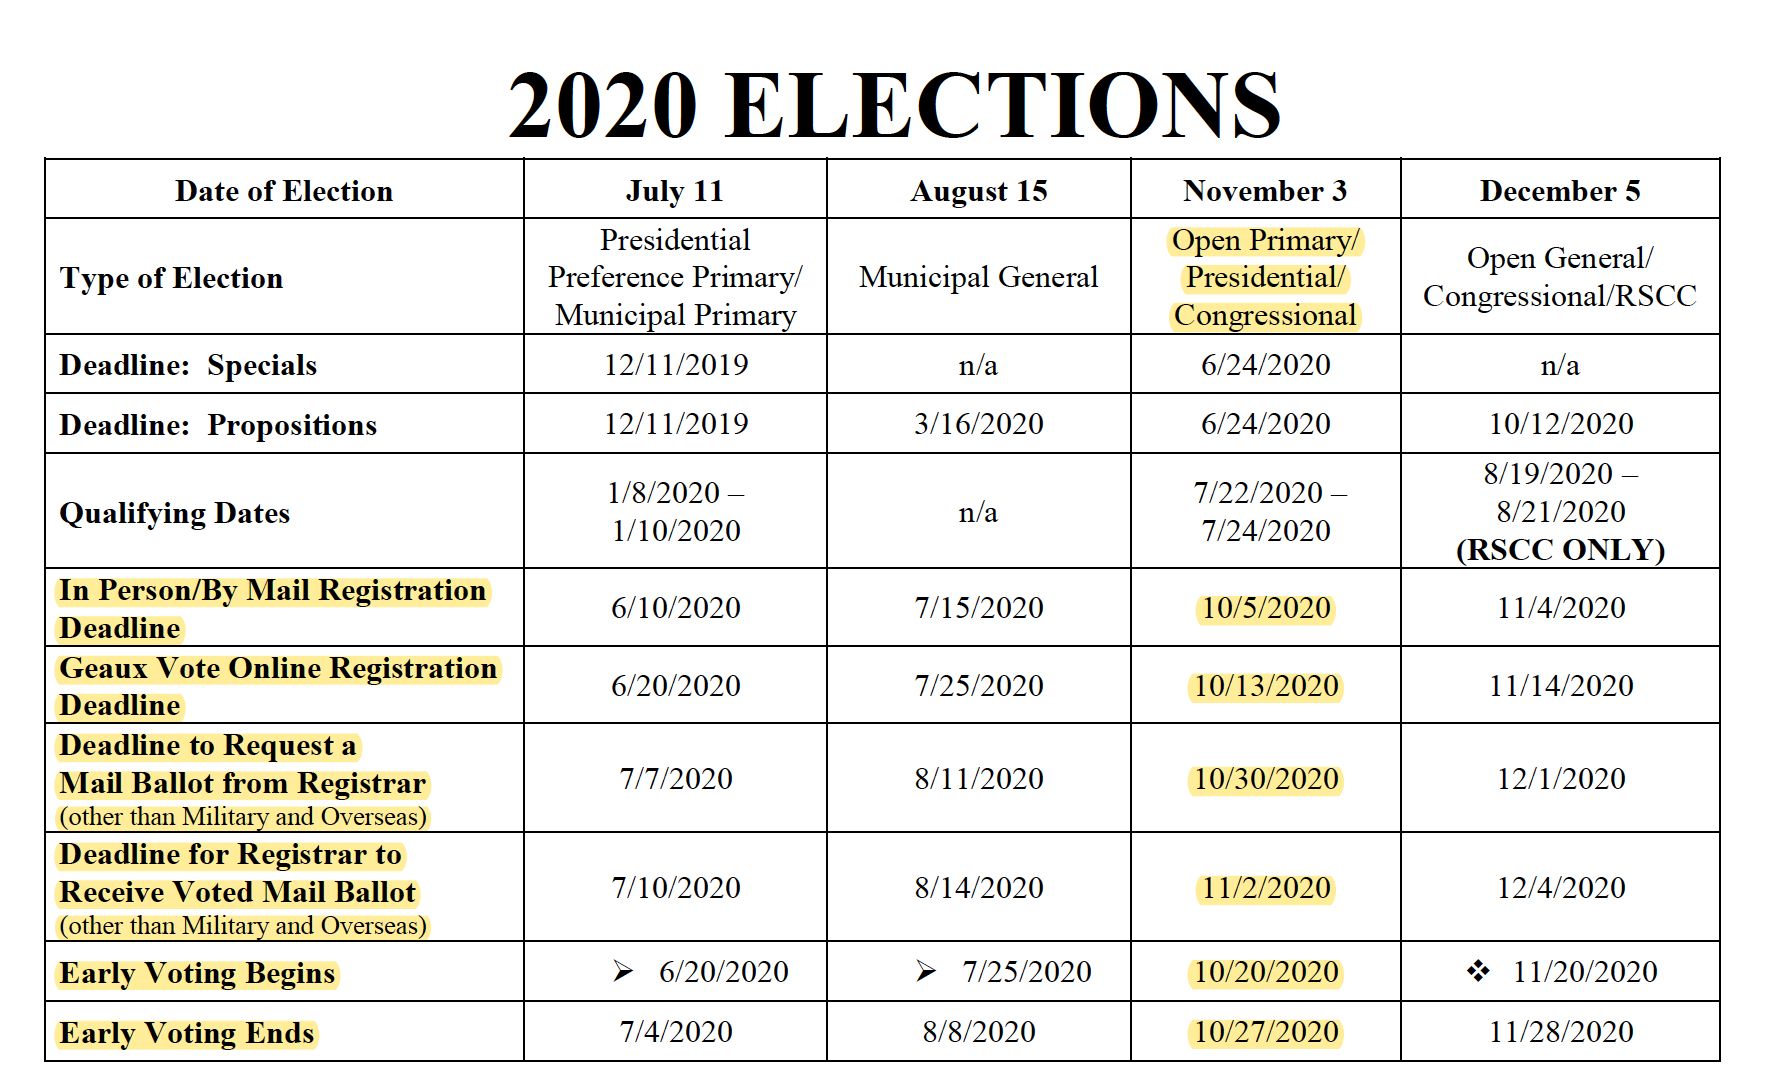 2020 Election Deadlines fo Louisiana